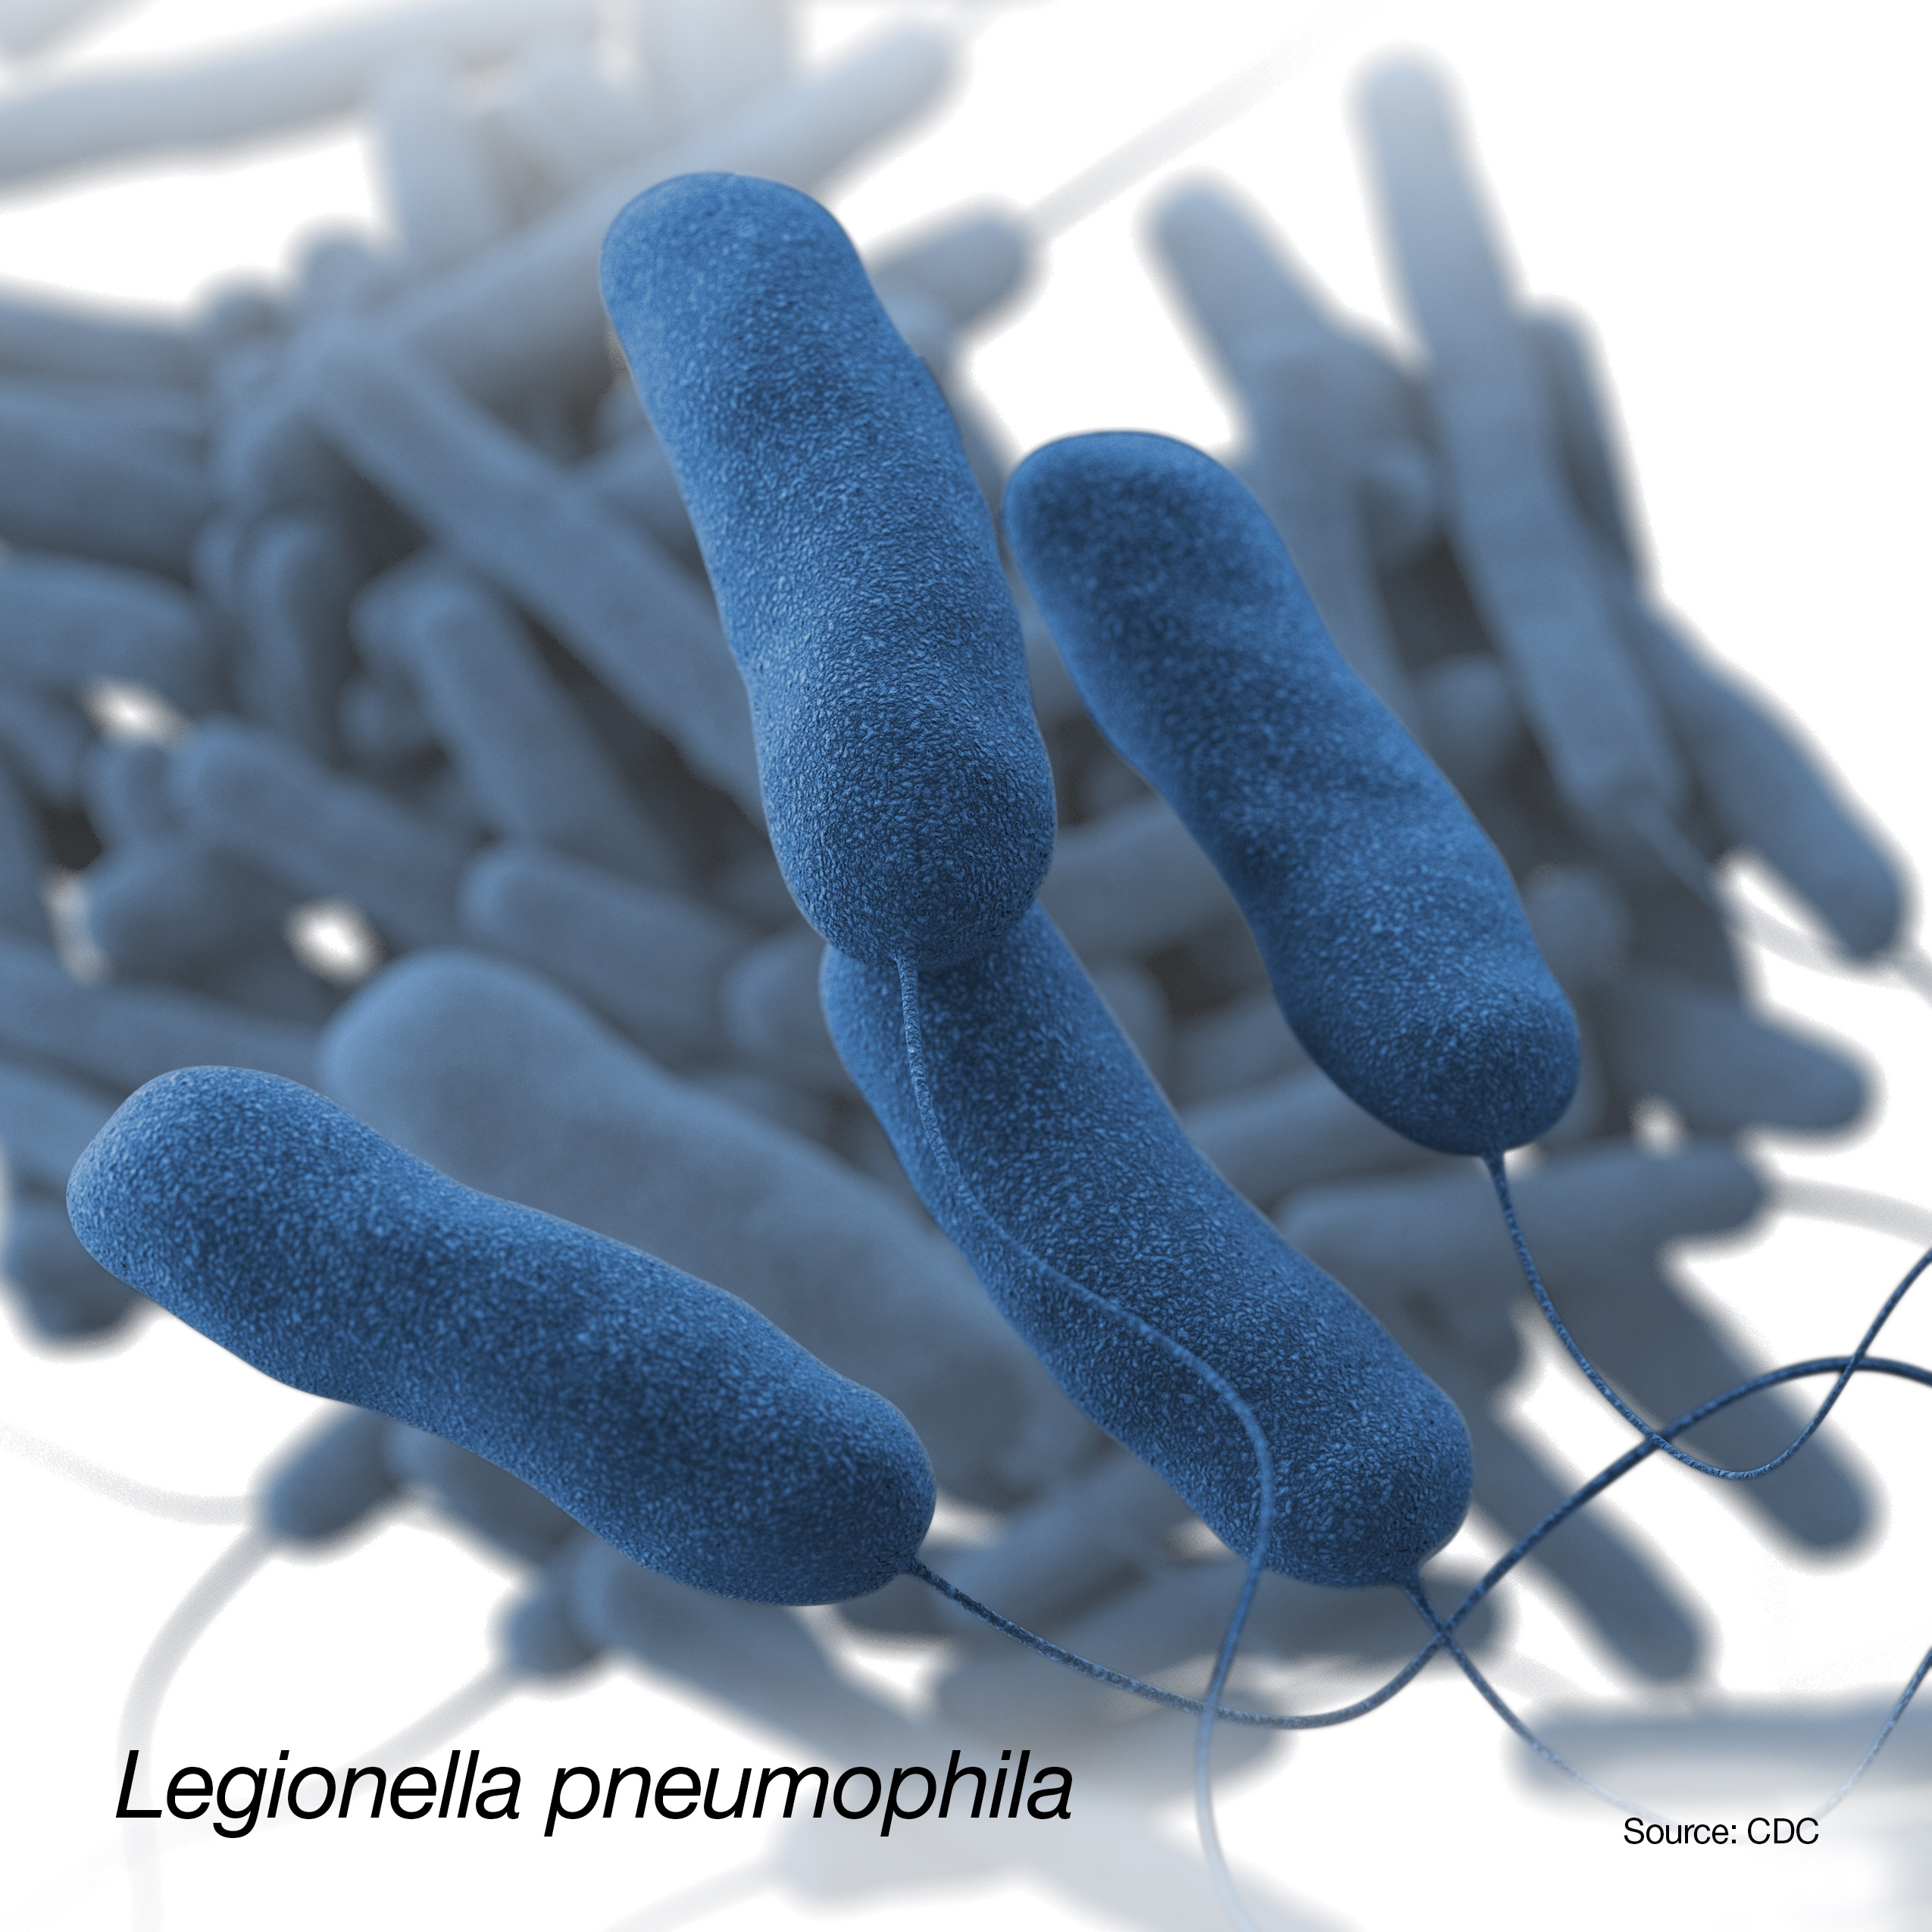 Photo of legionella pneumophila